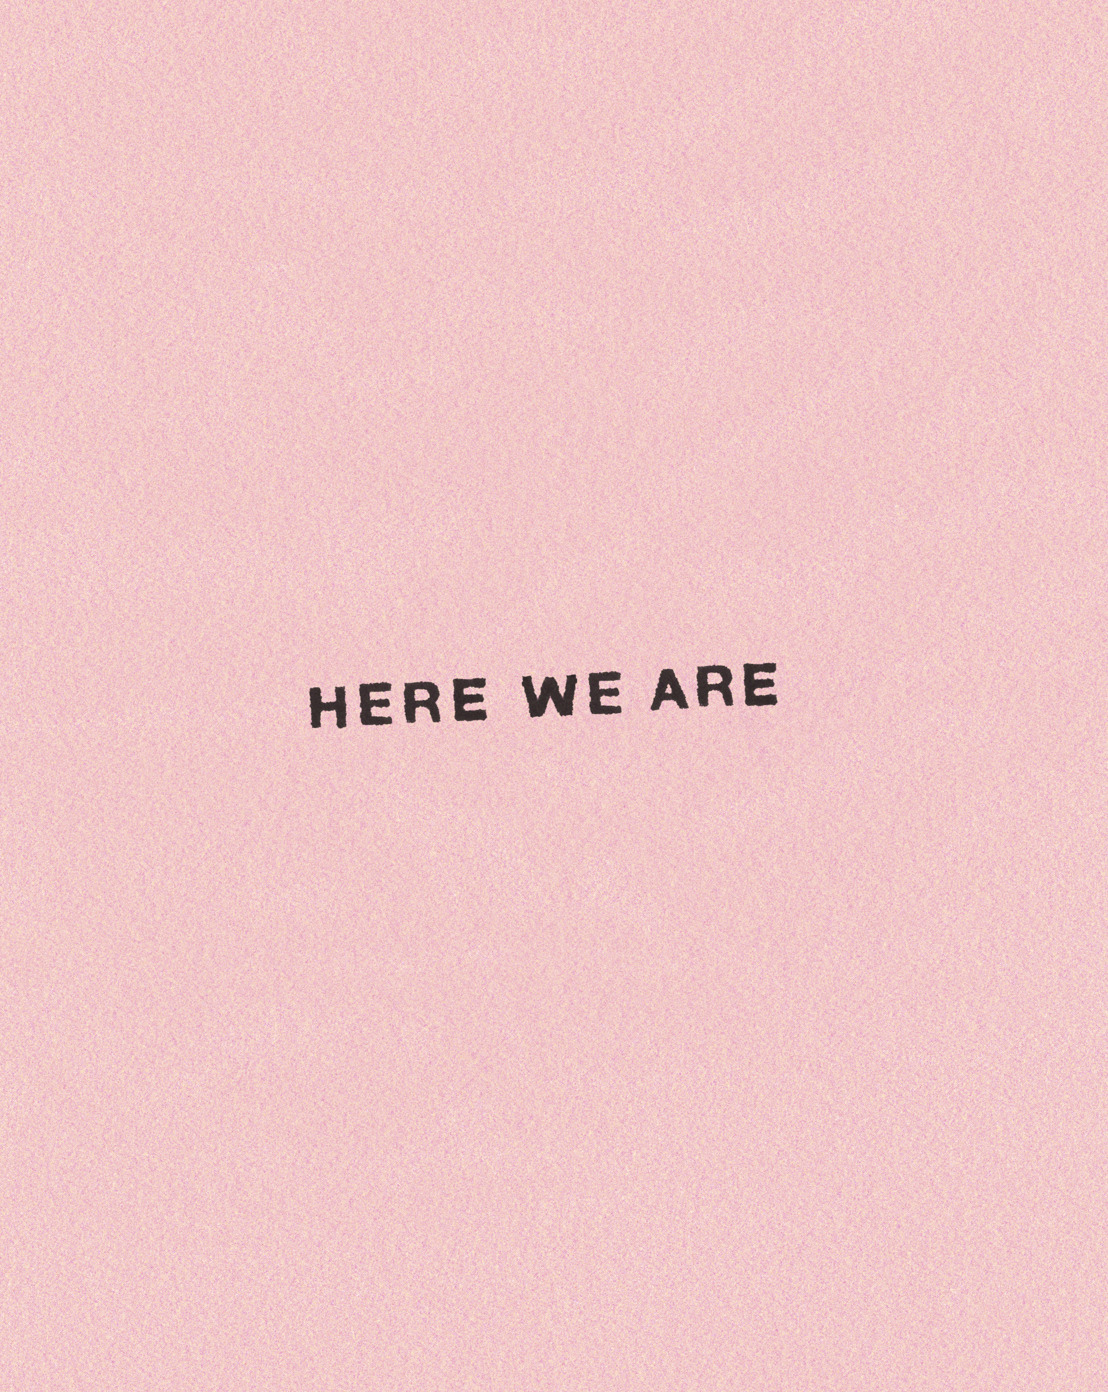 Burberry 'Here We Are'